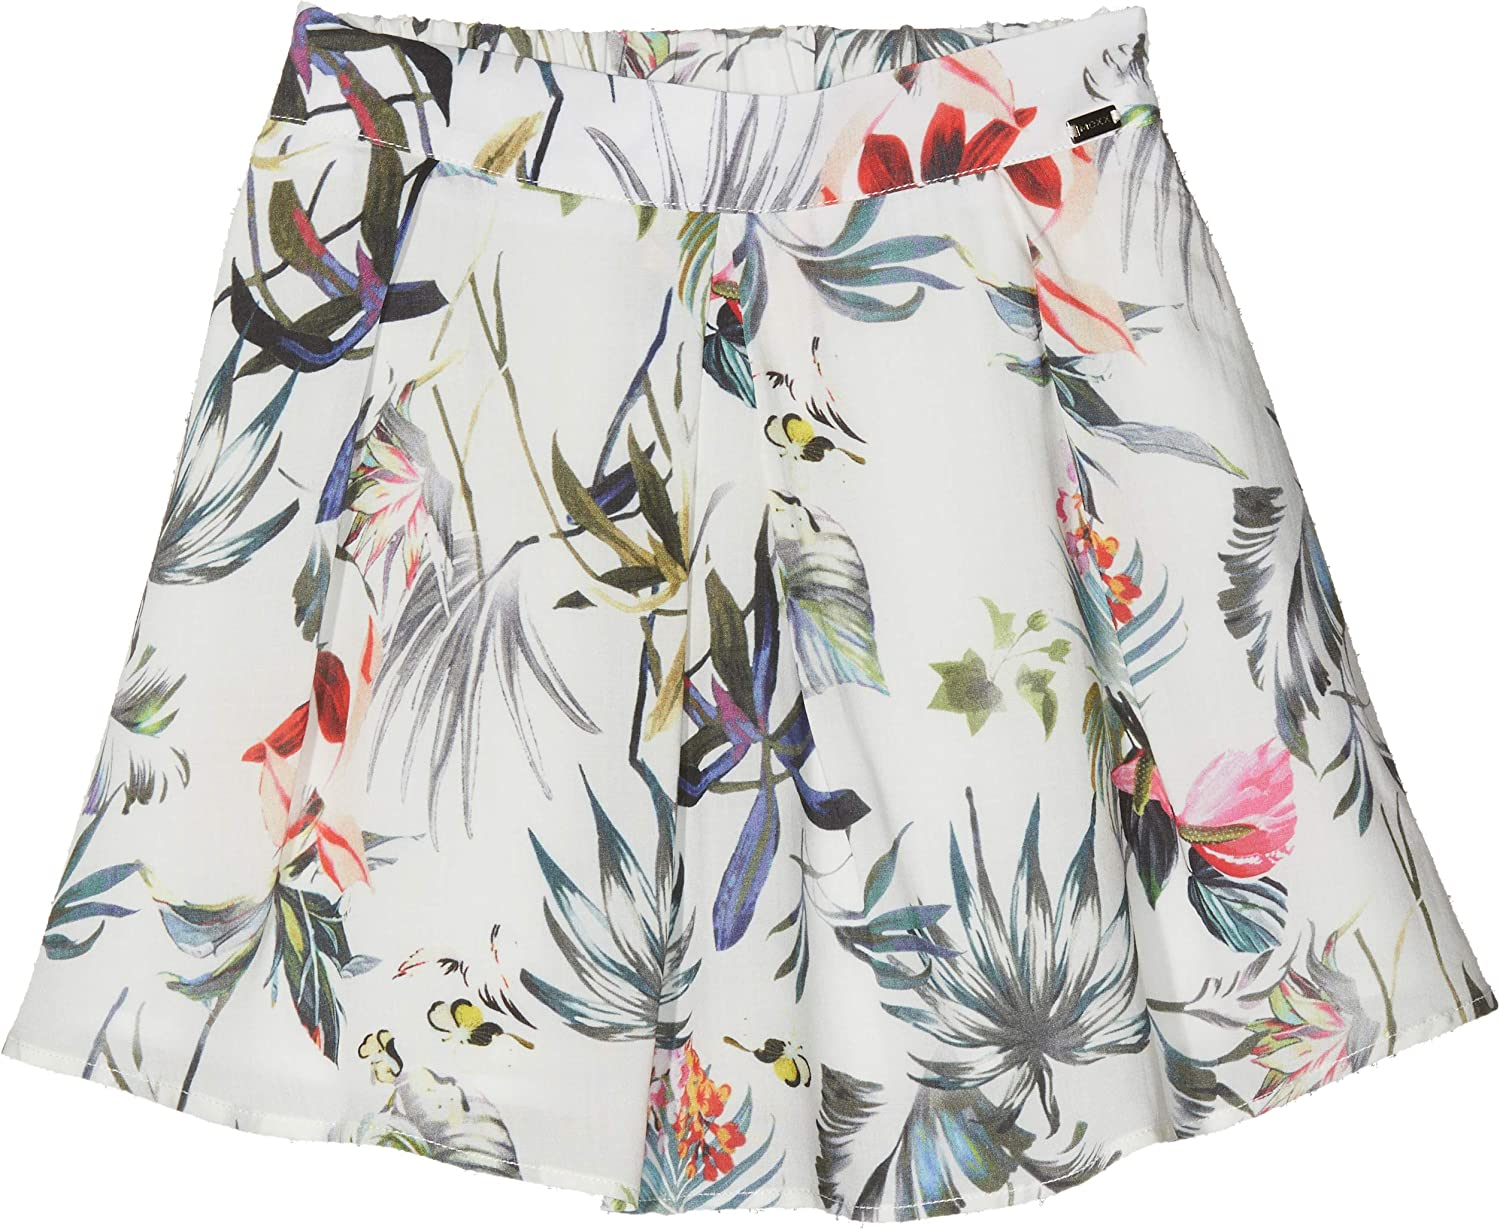 Mexx Girls Skirt